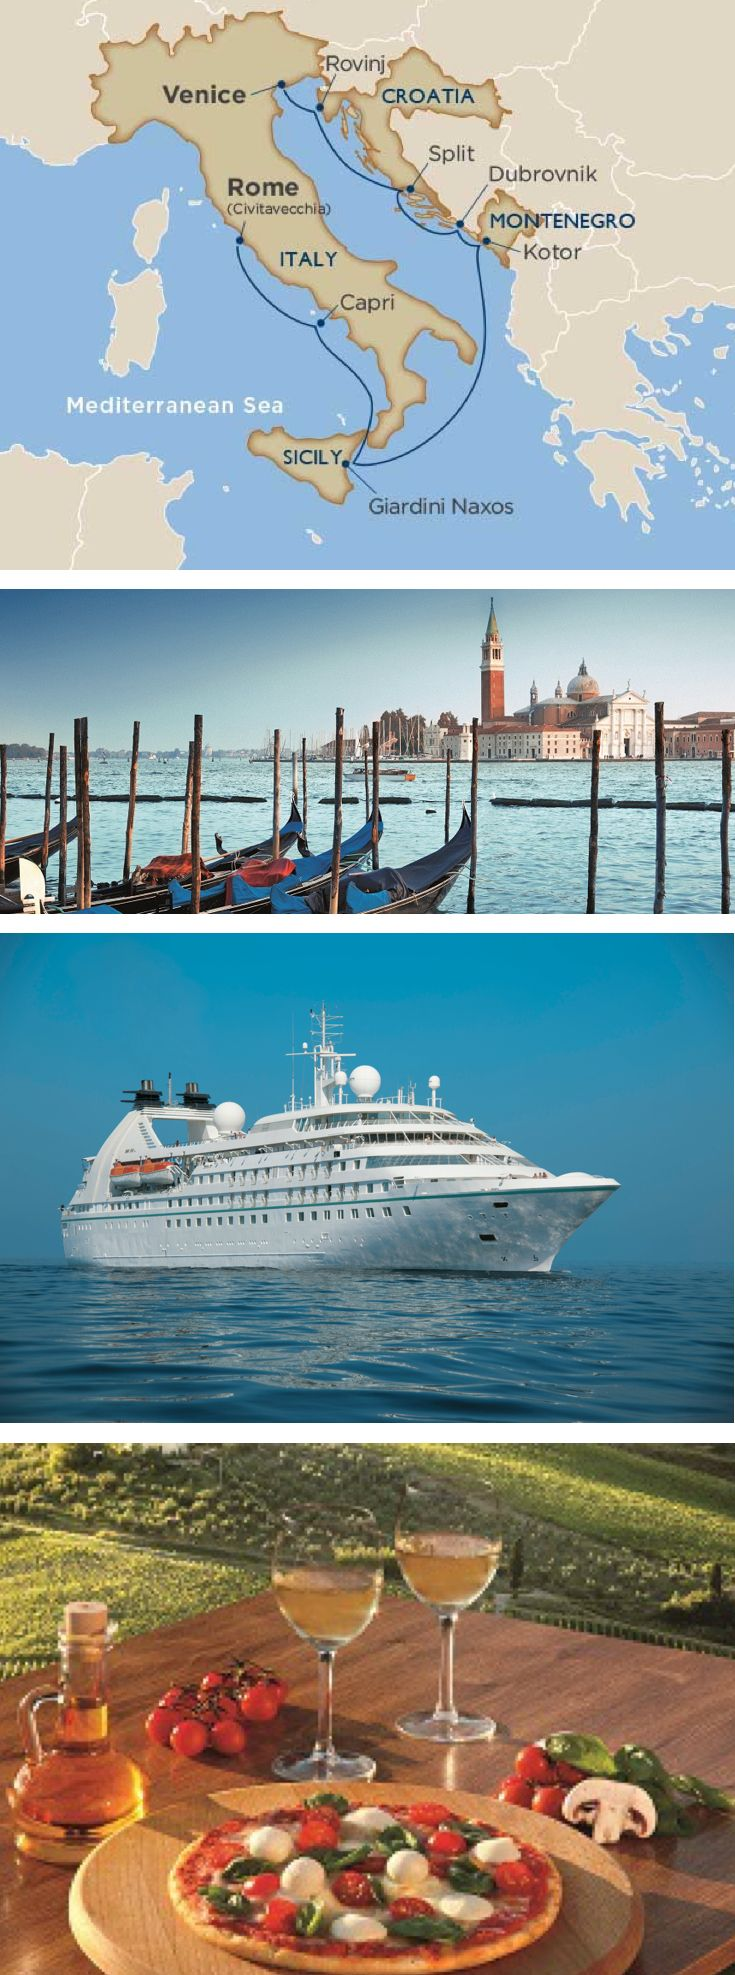 9 best images about instants ponant - ponant moments on pinterest